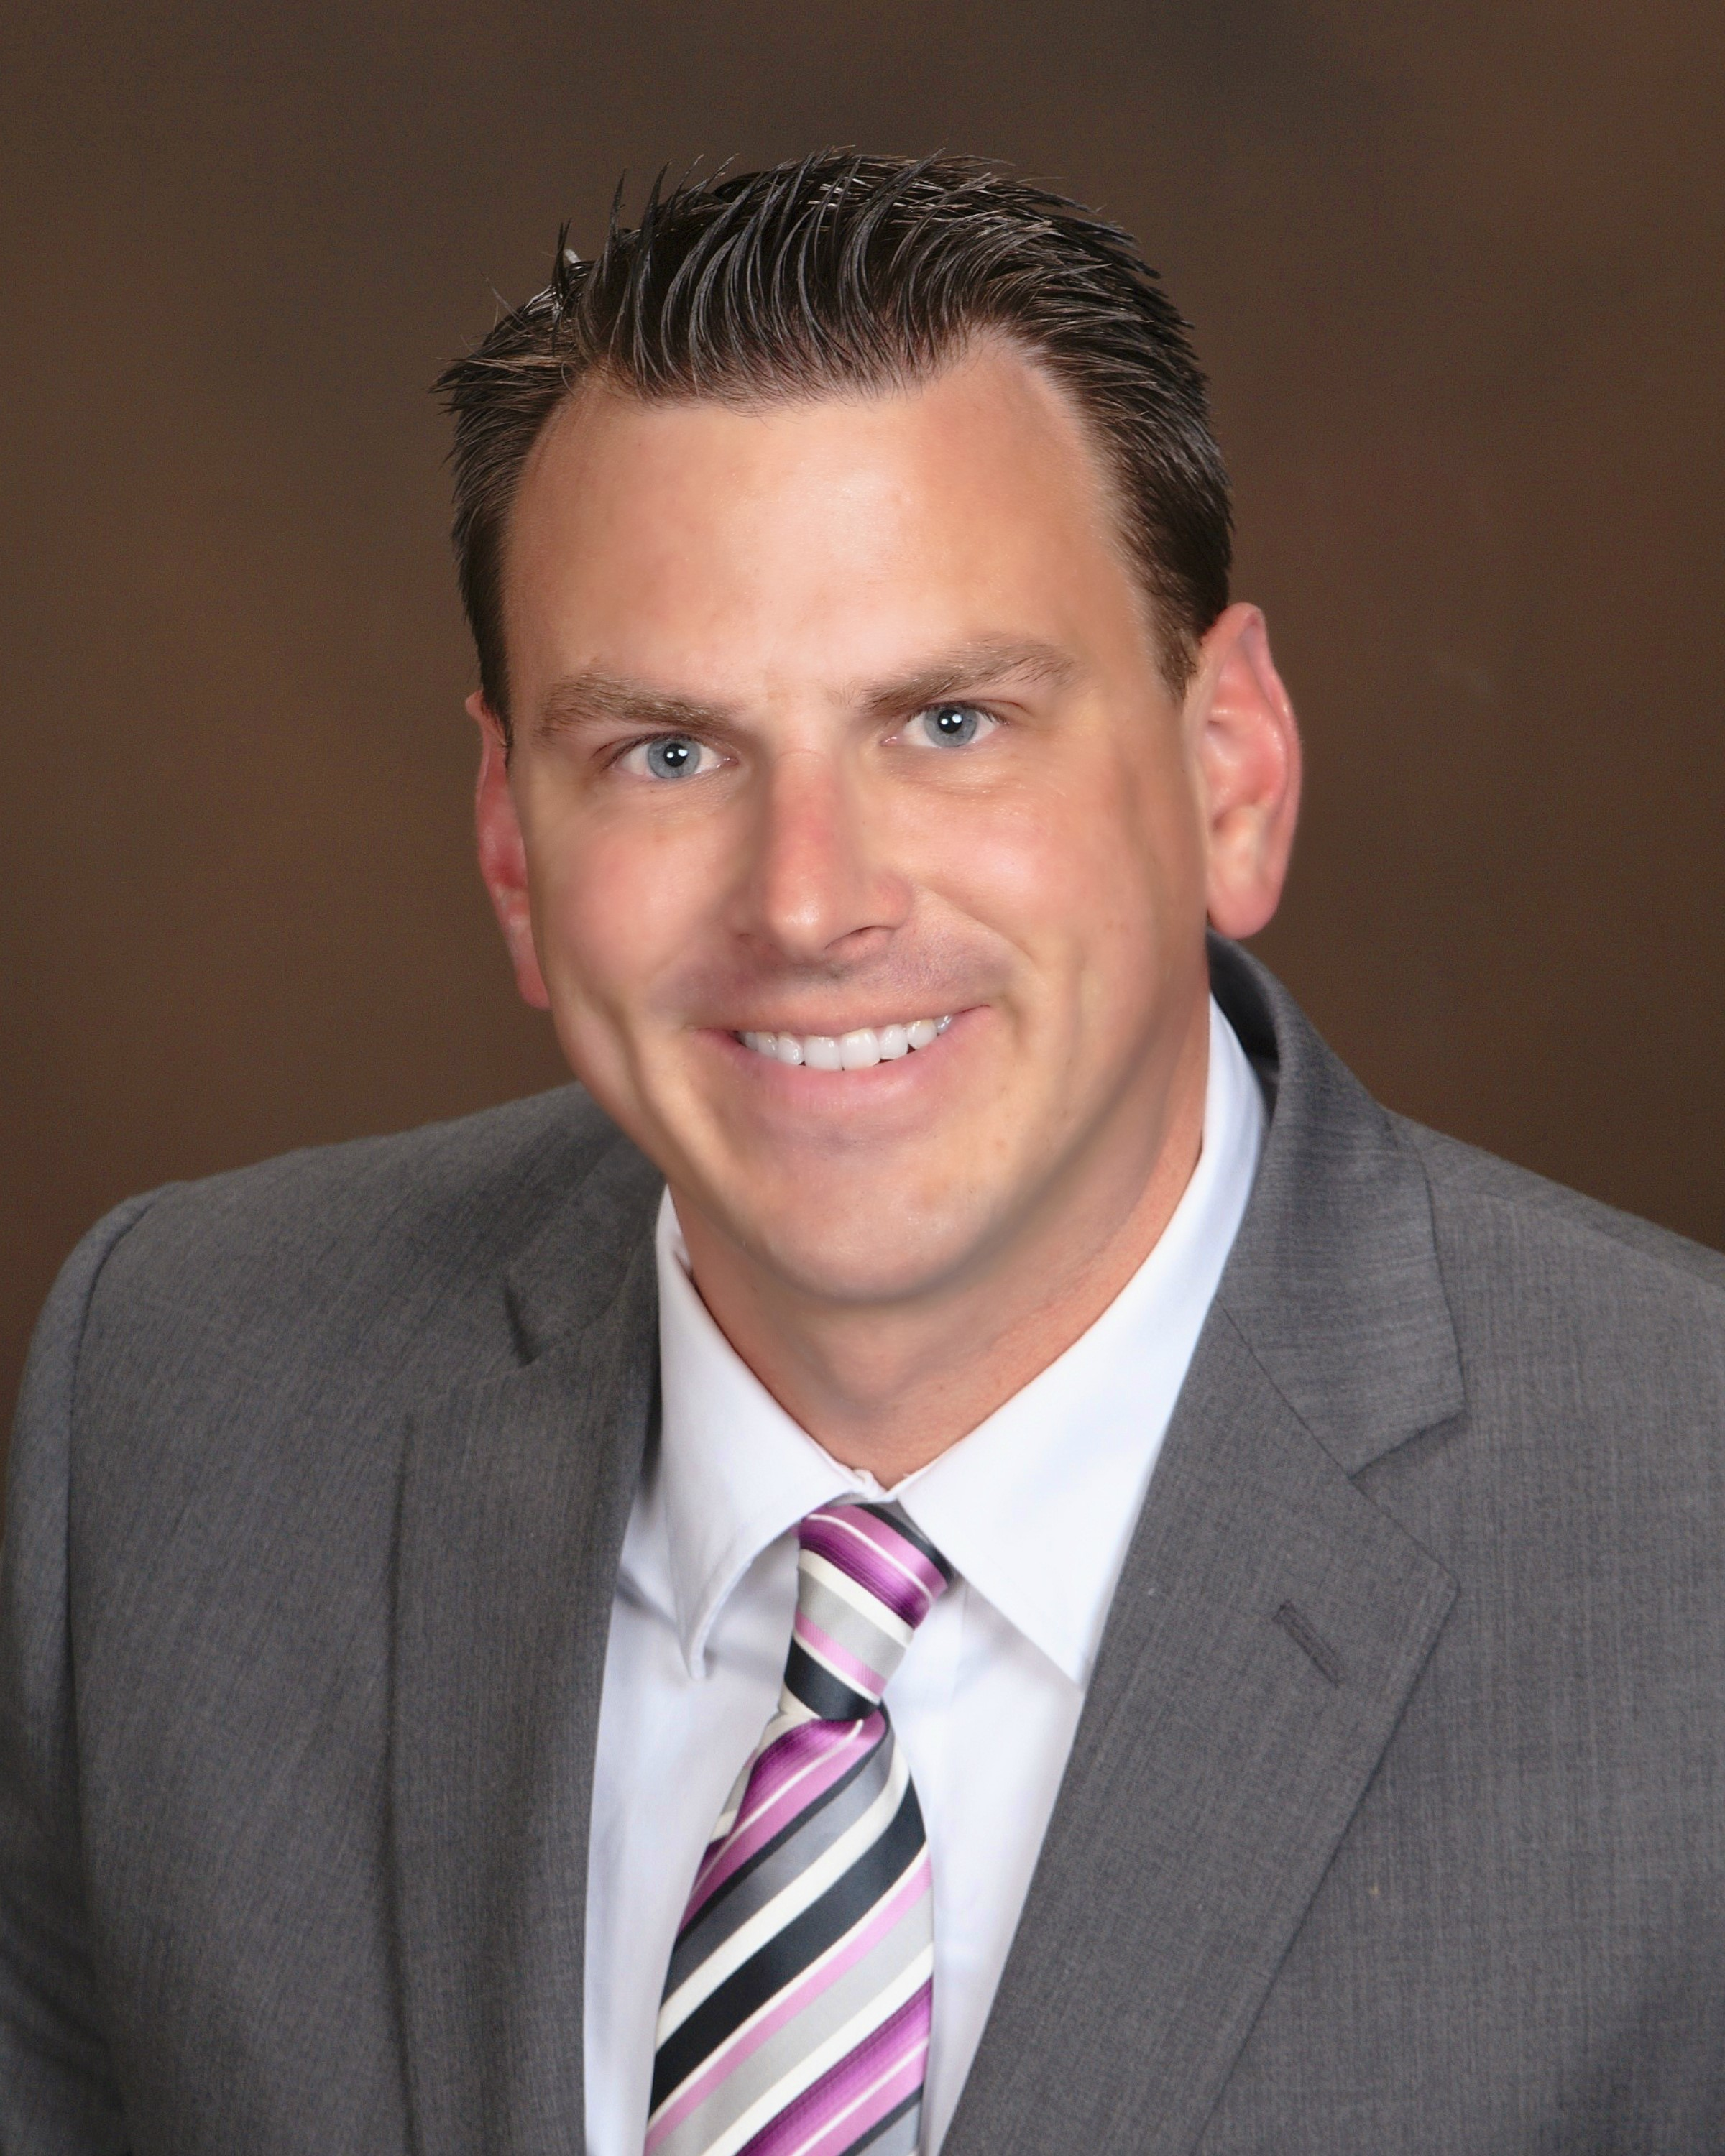 John McDaniel, Director of Business Development, joins C&W Services, a facilities services company.